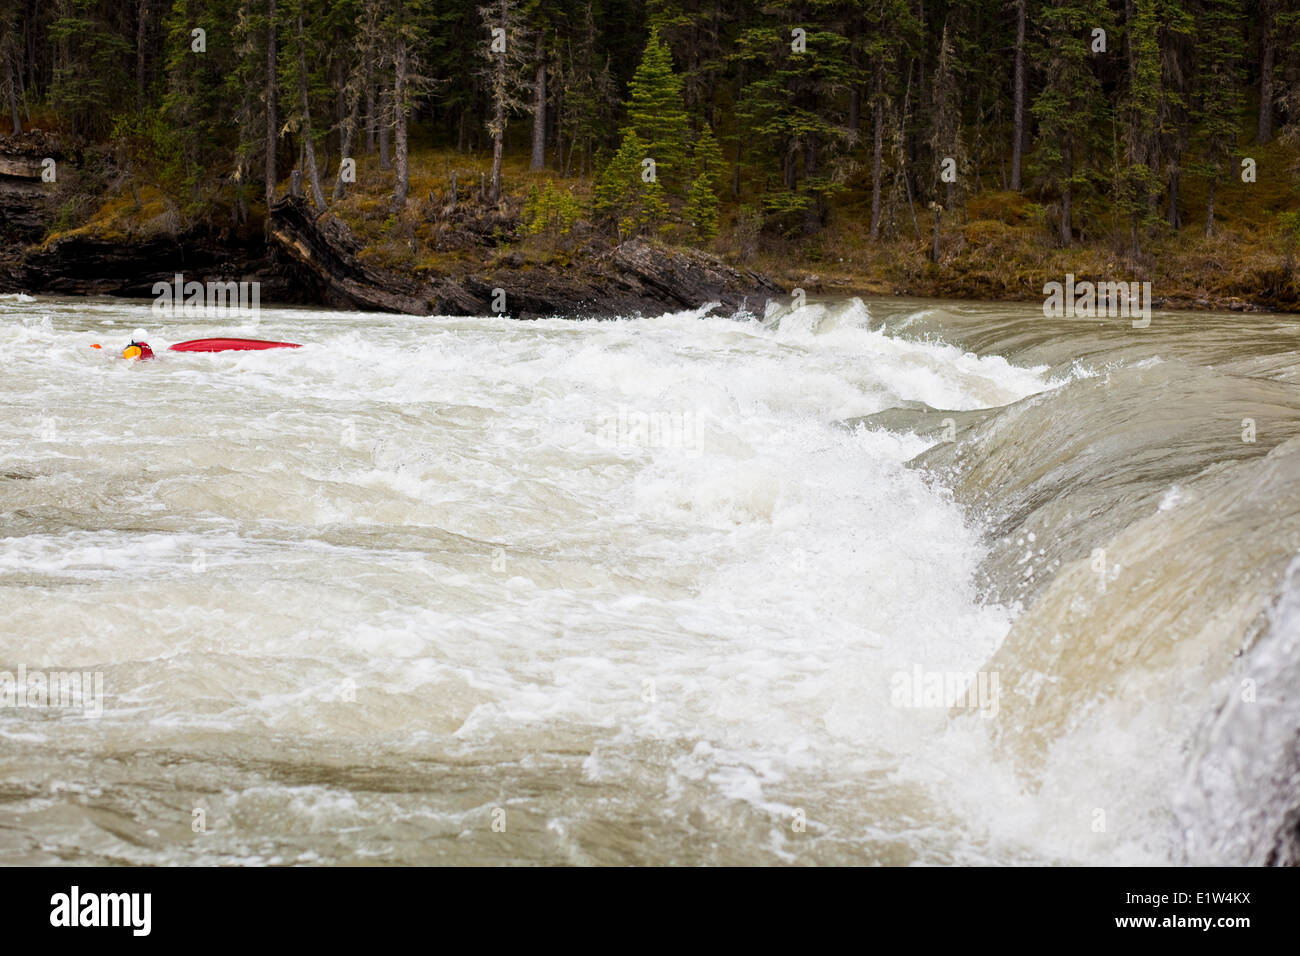 A female kayaker swimming over a dangerous rapid on the Red Deer River, AB - Stock Image